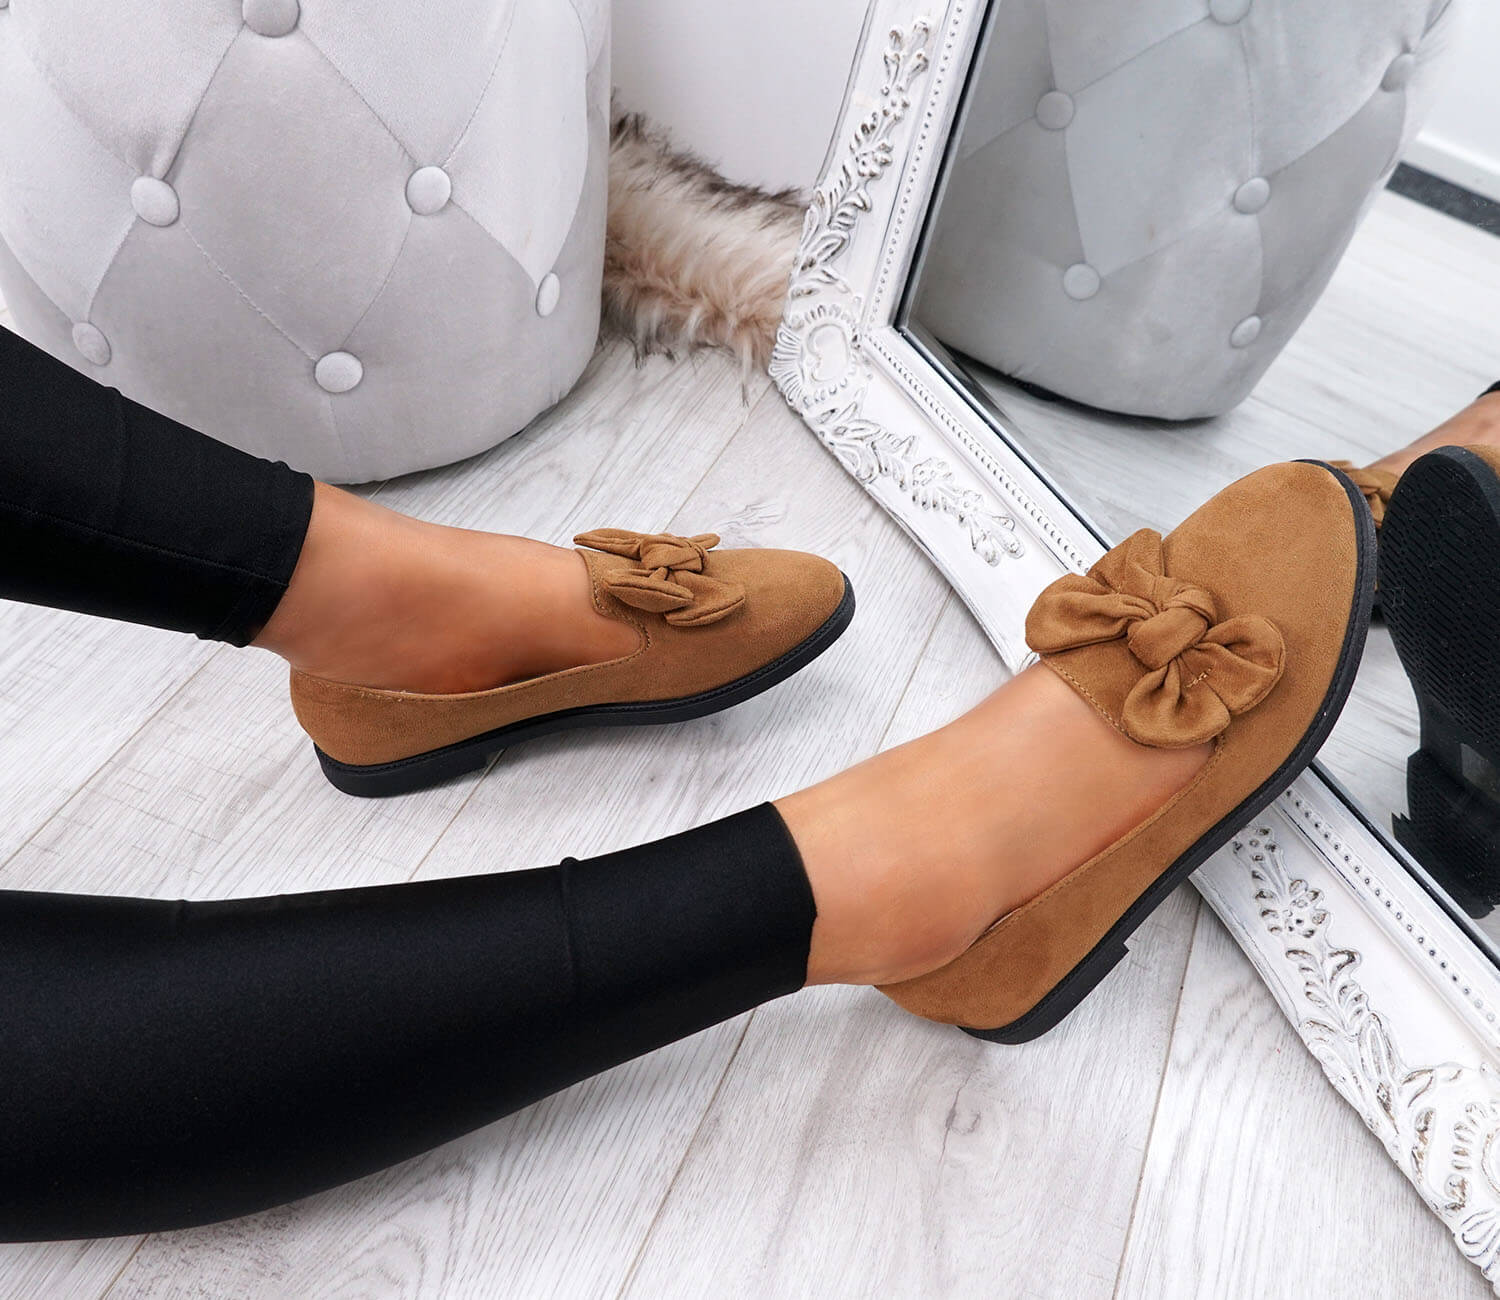 WOMENS-LADIES-BOW-BALLERINA-PUMPS-FLATS-SLIP-ON-BALLET-CASUAL-WORK-SHOES-SIZE thumbnail 18